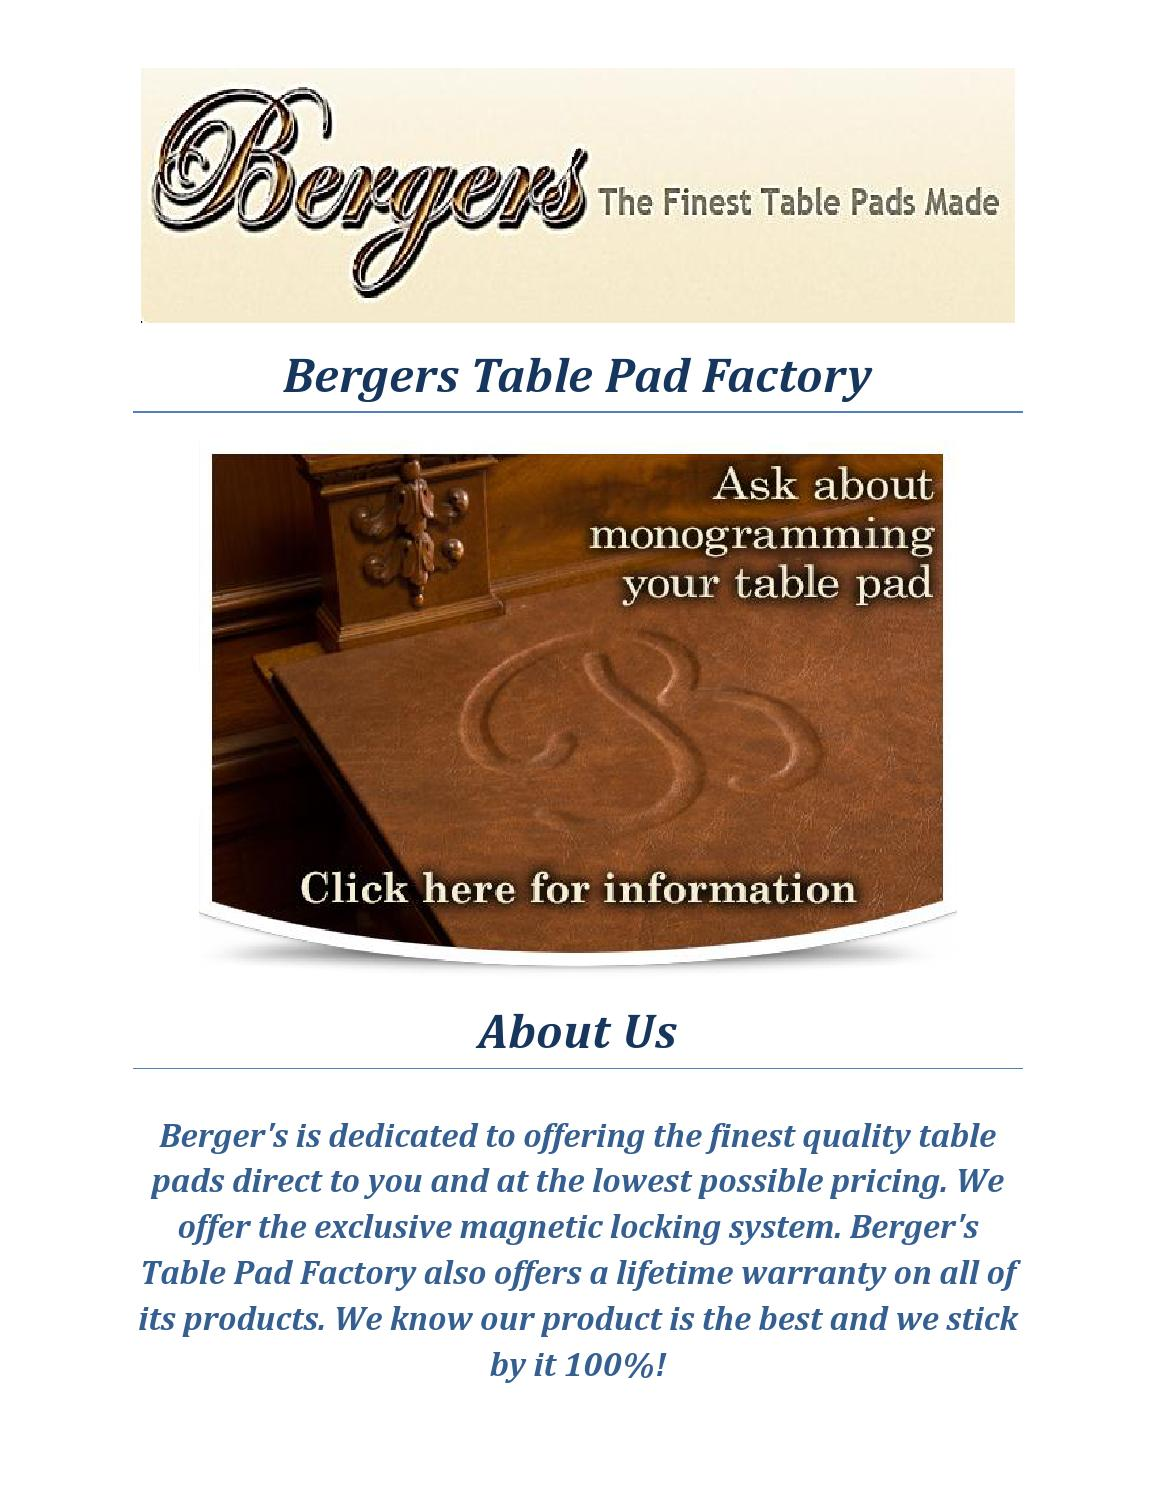 Bergers Table Pad Factory Table Protector By Bergers Table Pad Factory    Issuu